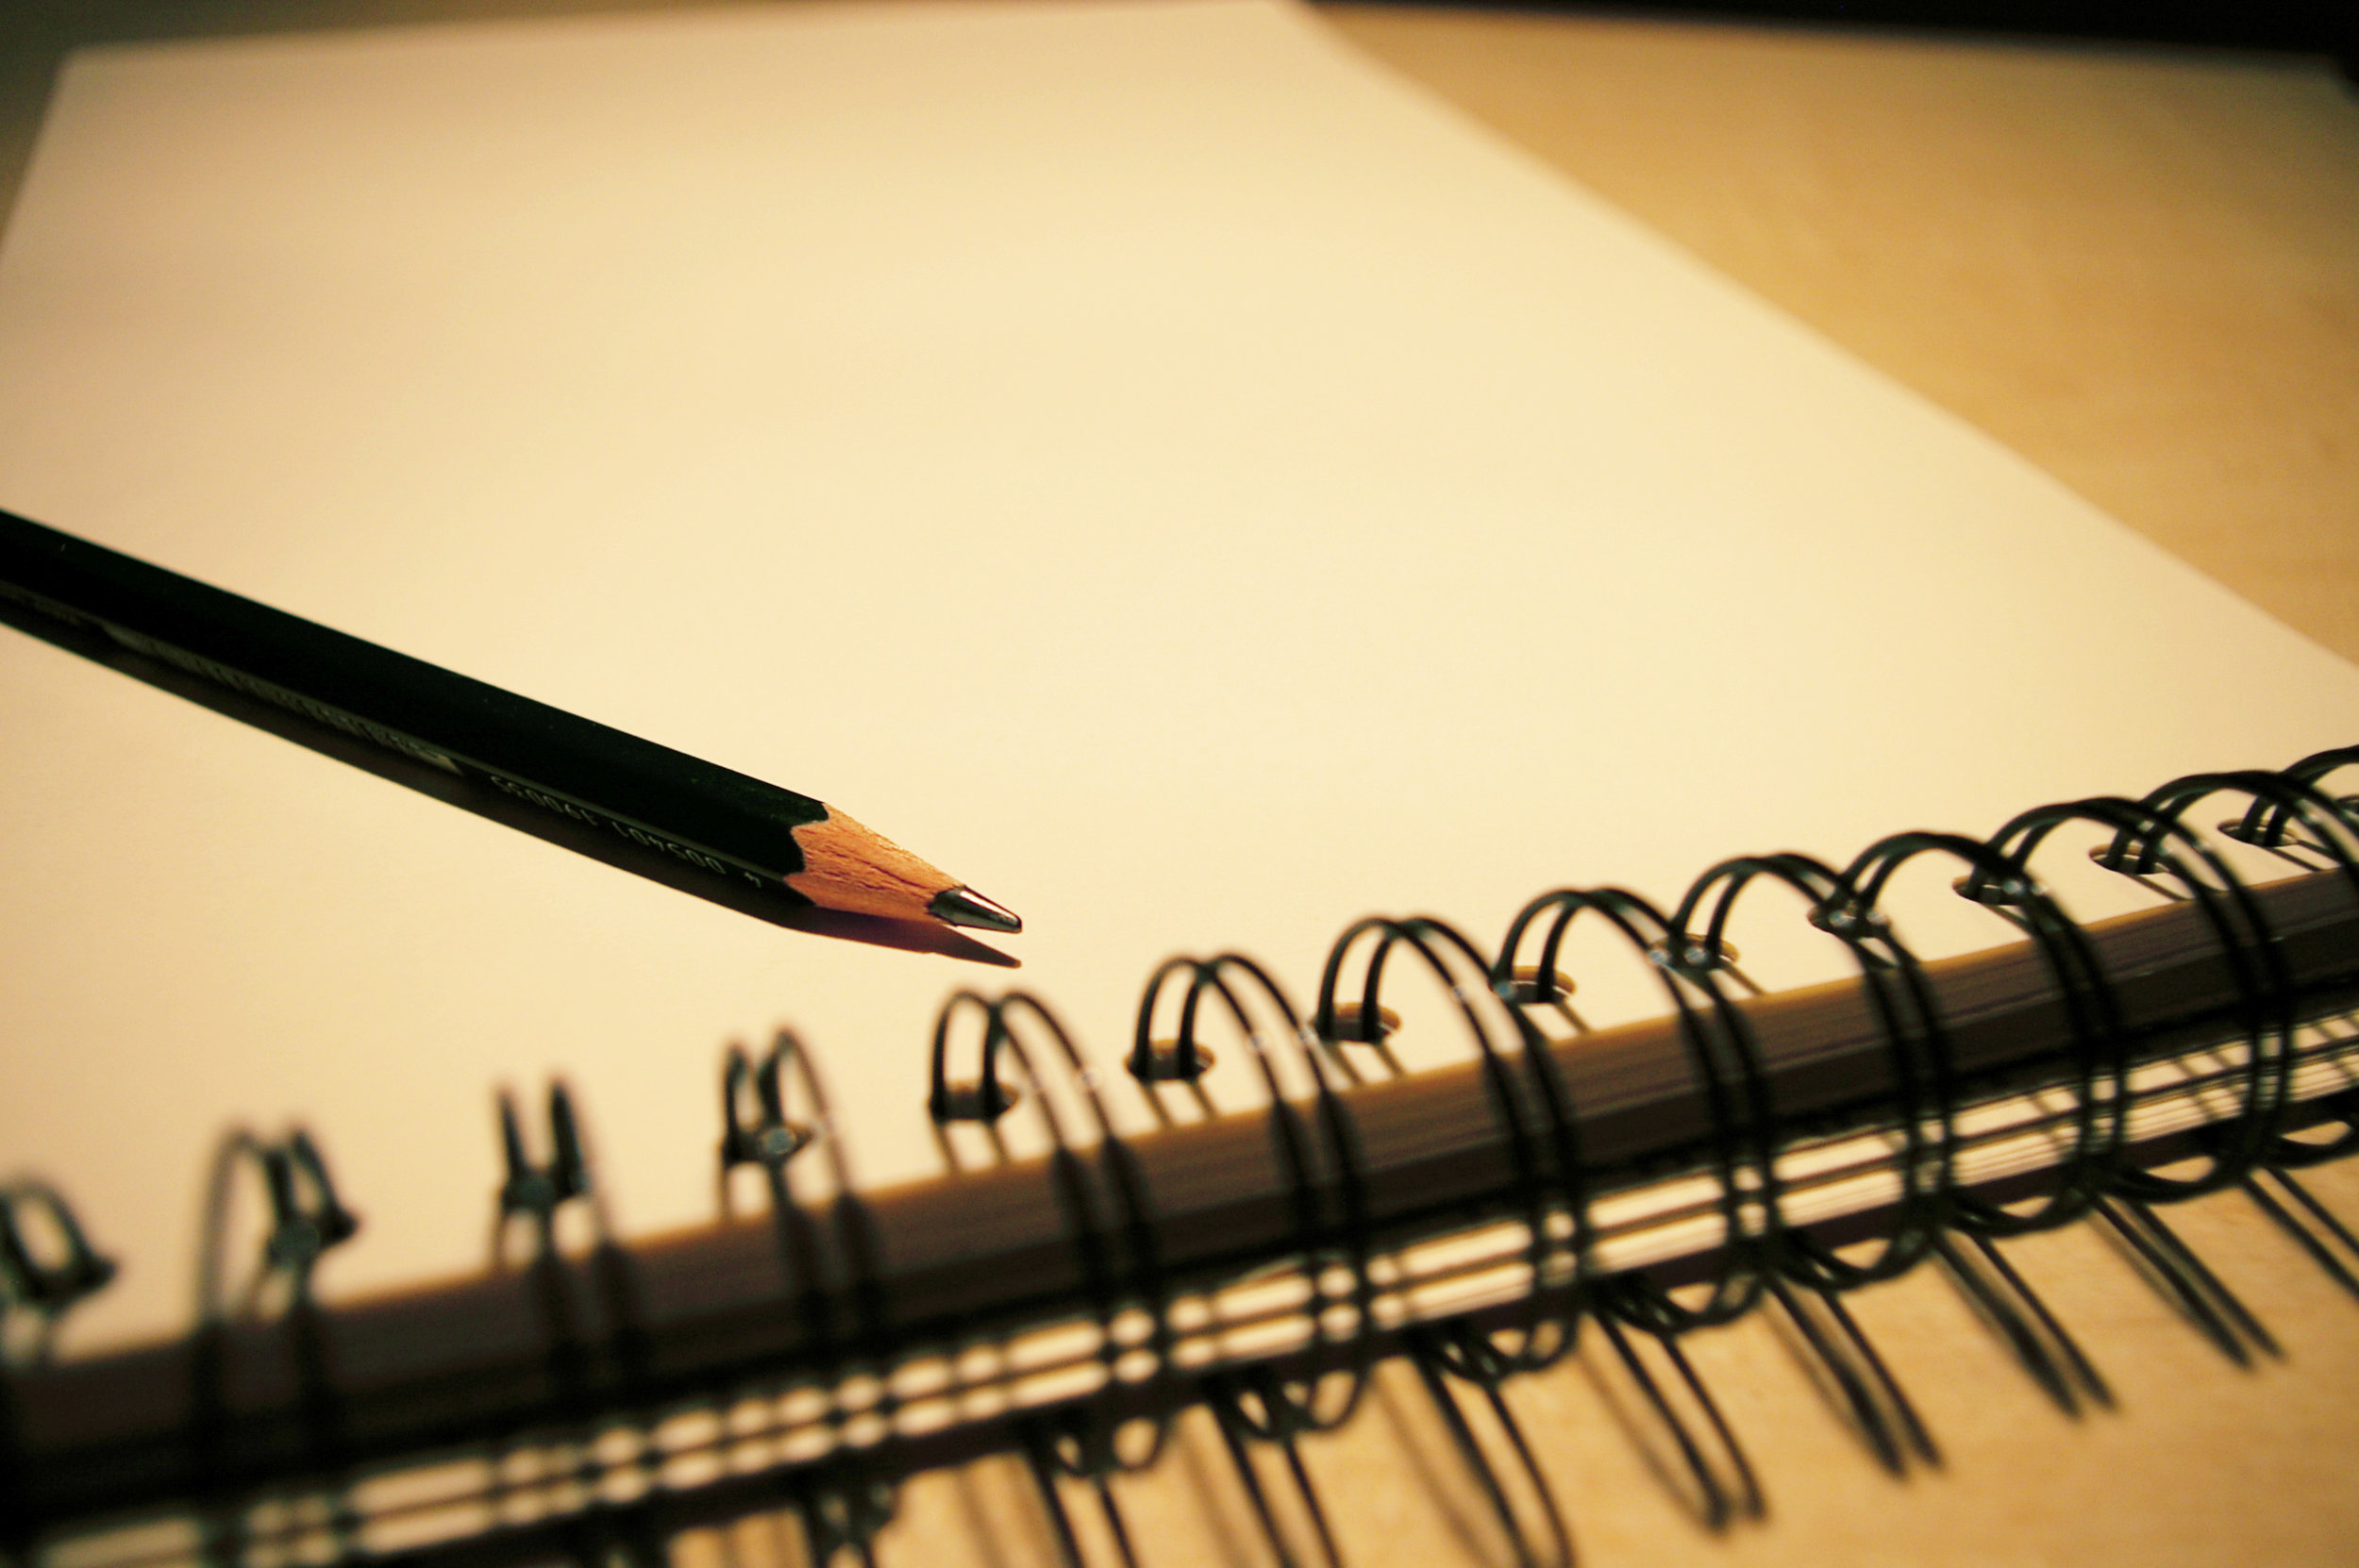 Free Images notepad pencil